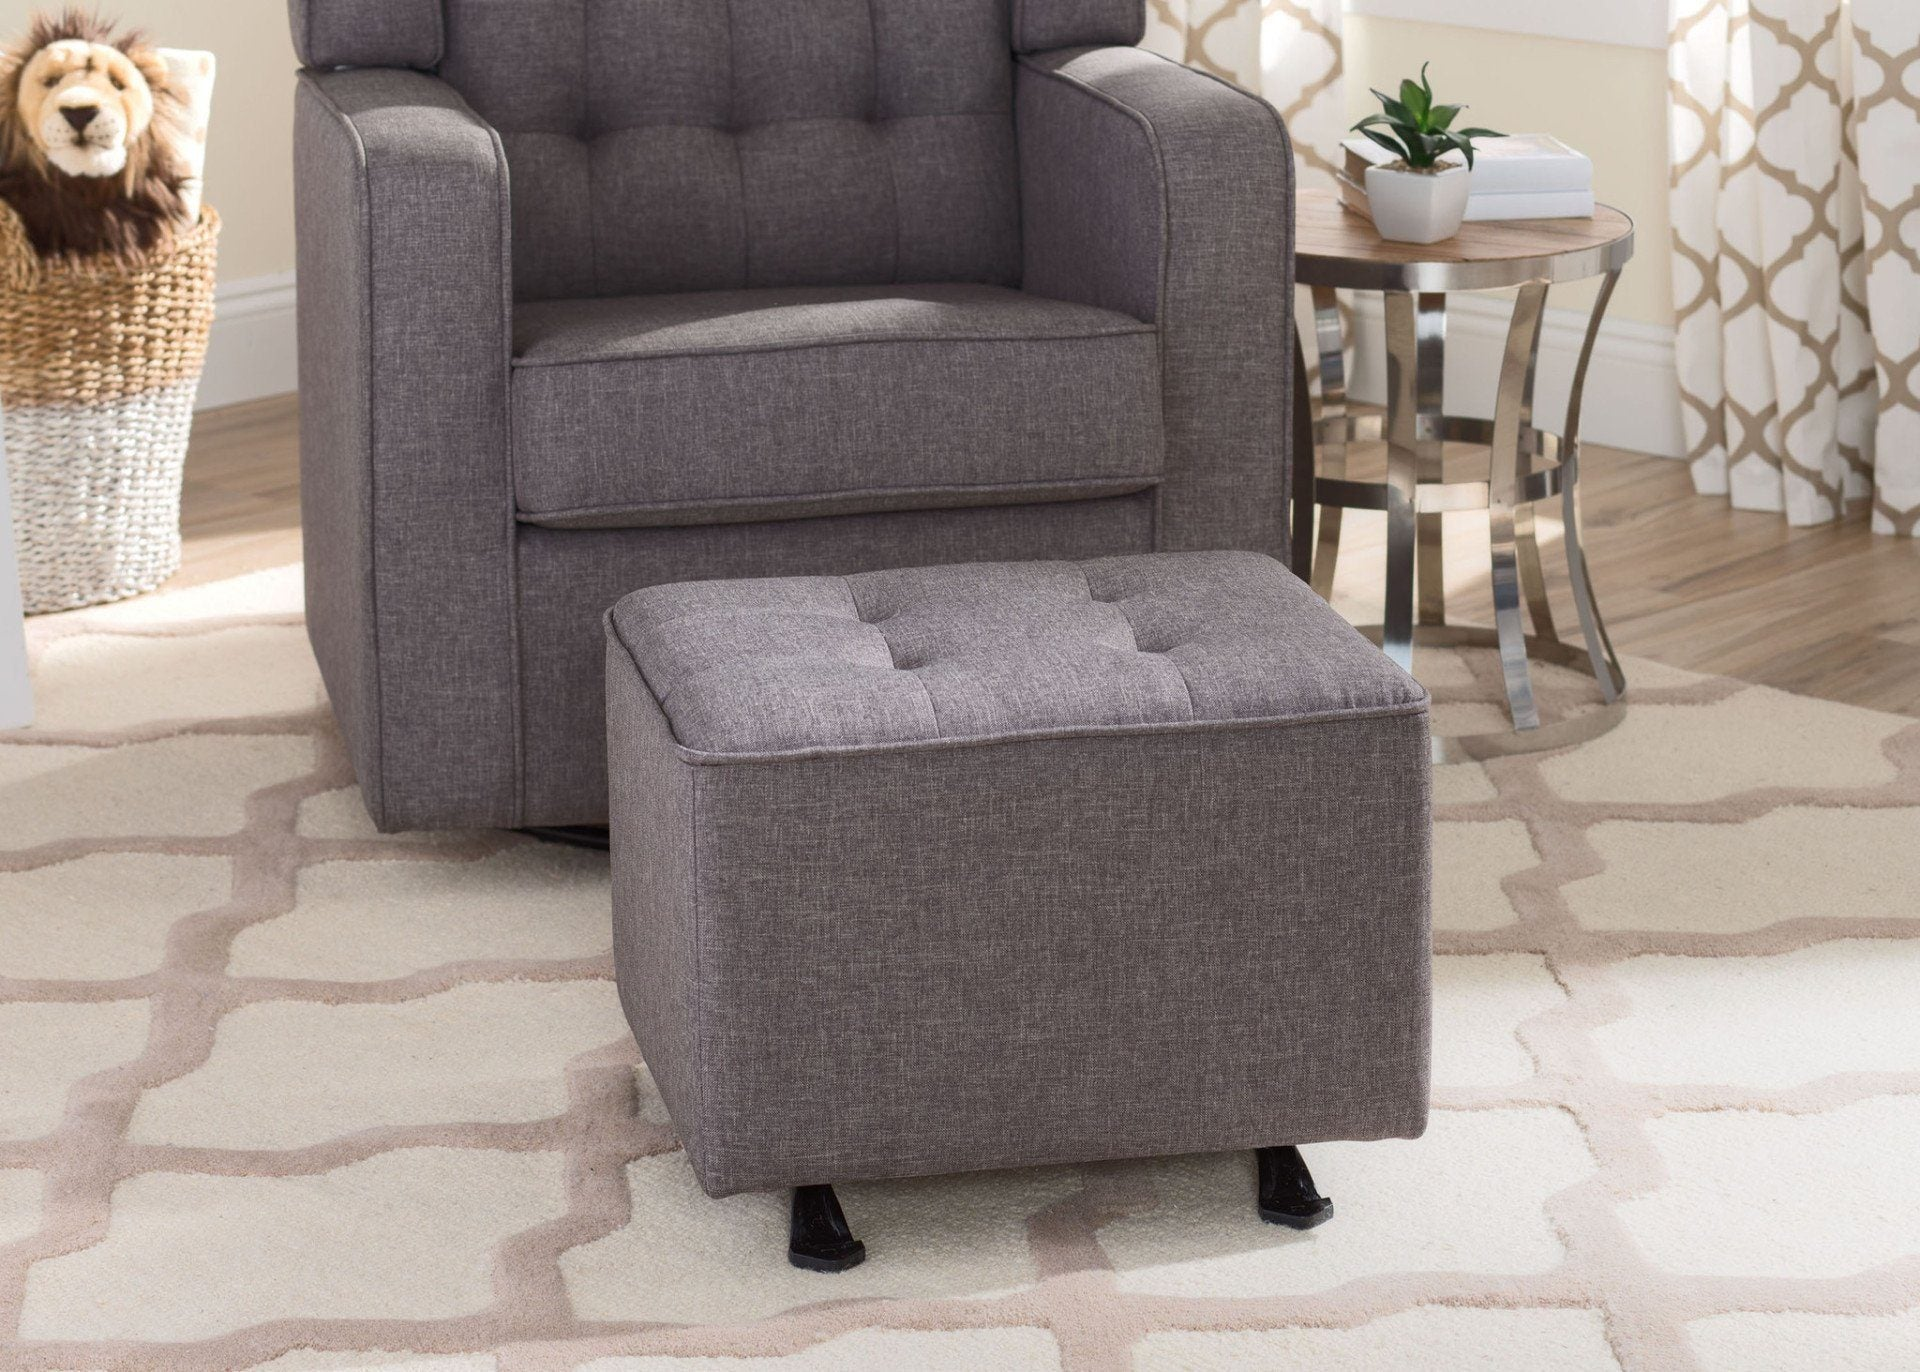 Lovely Delta Children Sweet Dark Grey (3101) Milan Tufted Nursery Gliding Ottoman,  Hangtag B2b ...